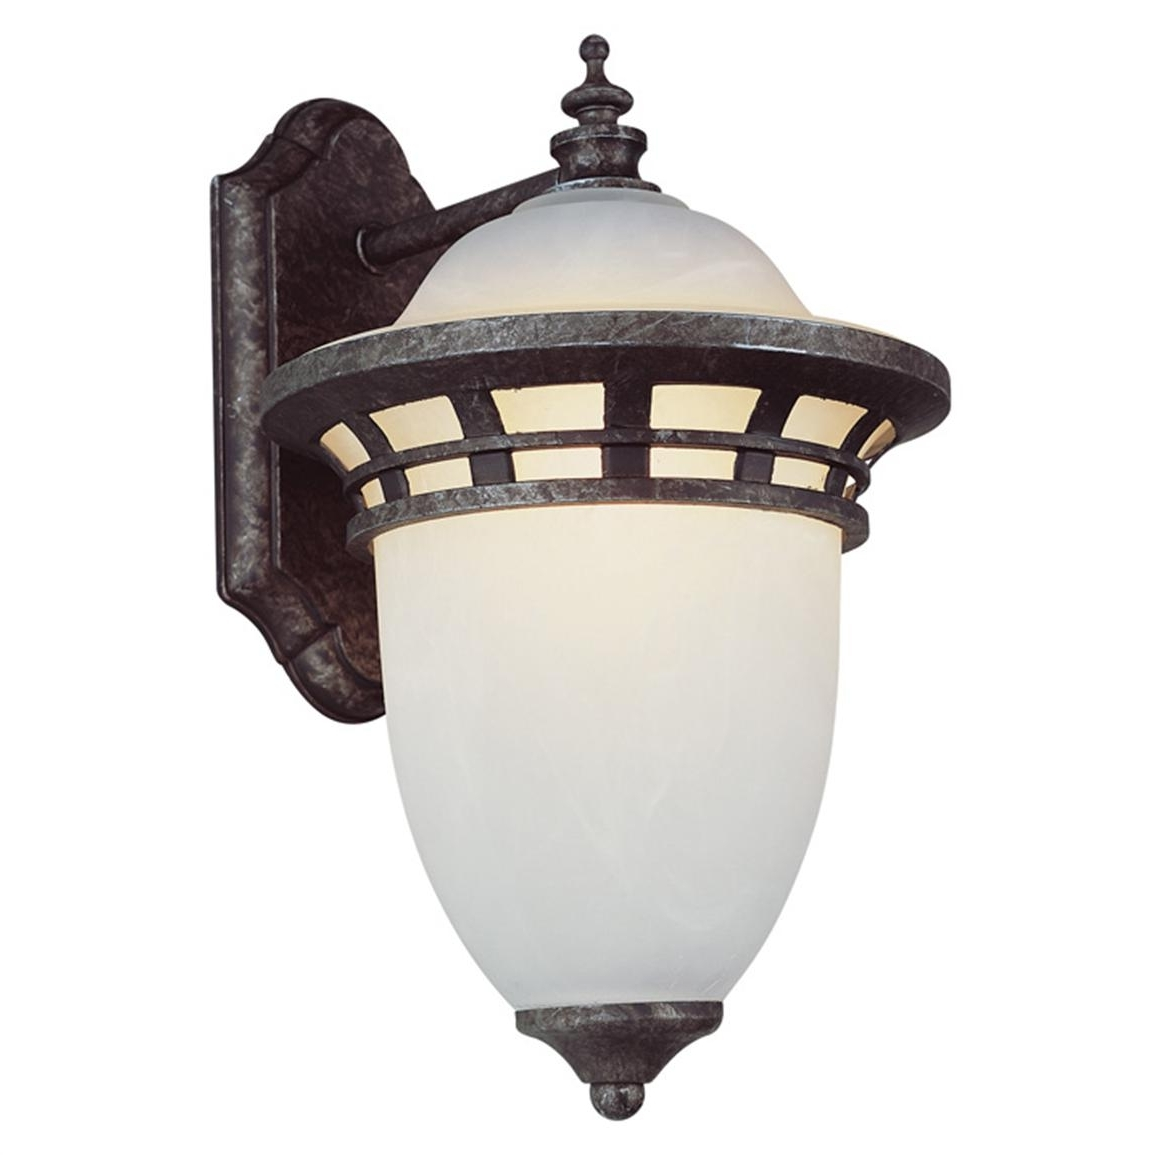 Most Up To Date Trans Globe Lighting 1 – Light Outdoor Antique Wall Lantern – 173599 With Regard To Outside Wall Globe Lights (View 17 of 20)